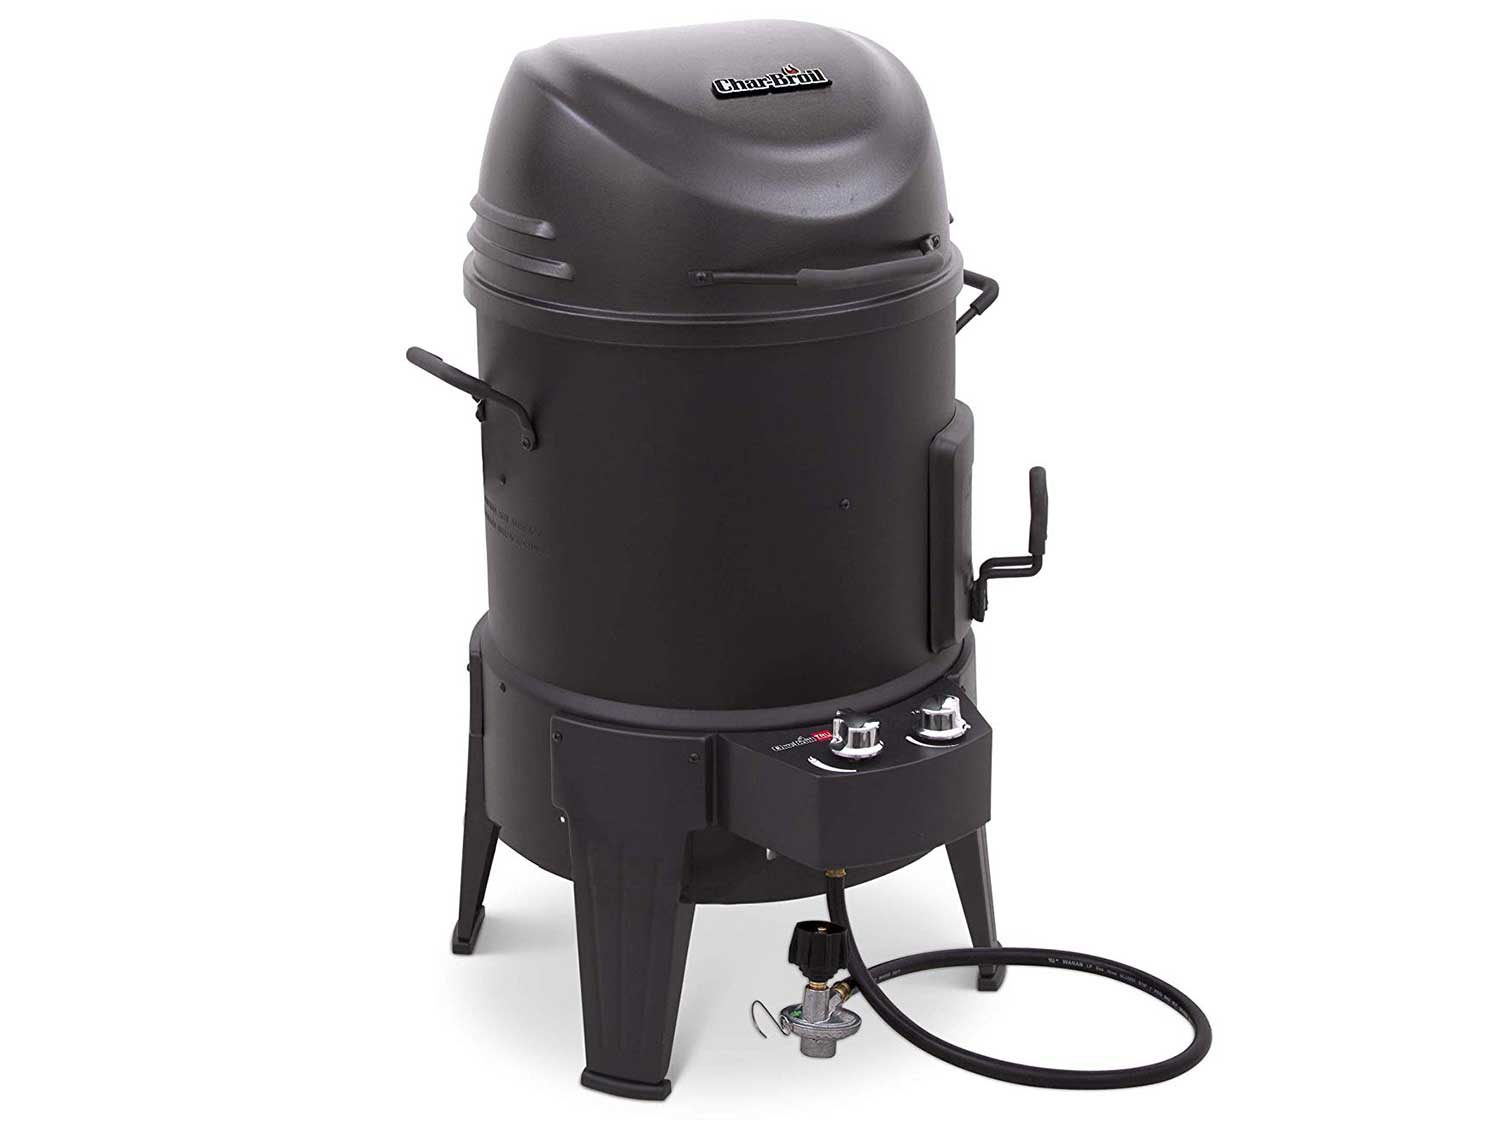 char-broil the big easy infrared smoker roaster